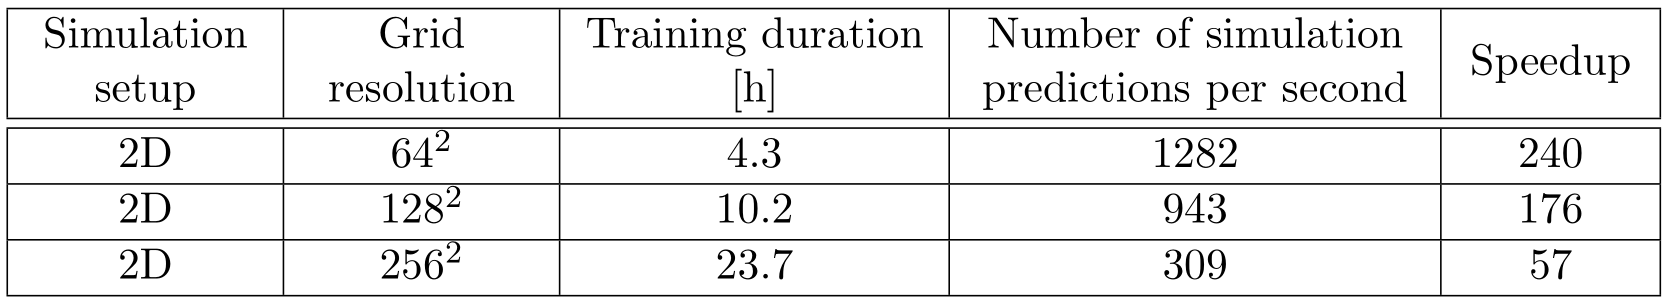 Neural Networks for Steady-State Fluid Flow Prediction: Part 3